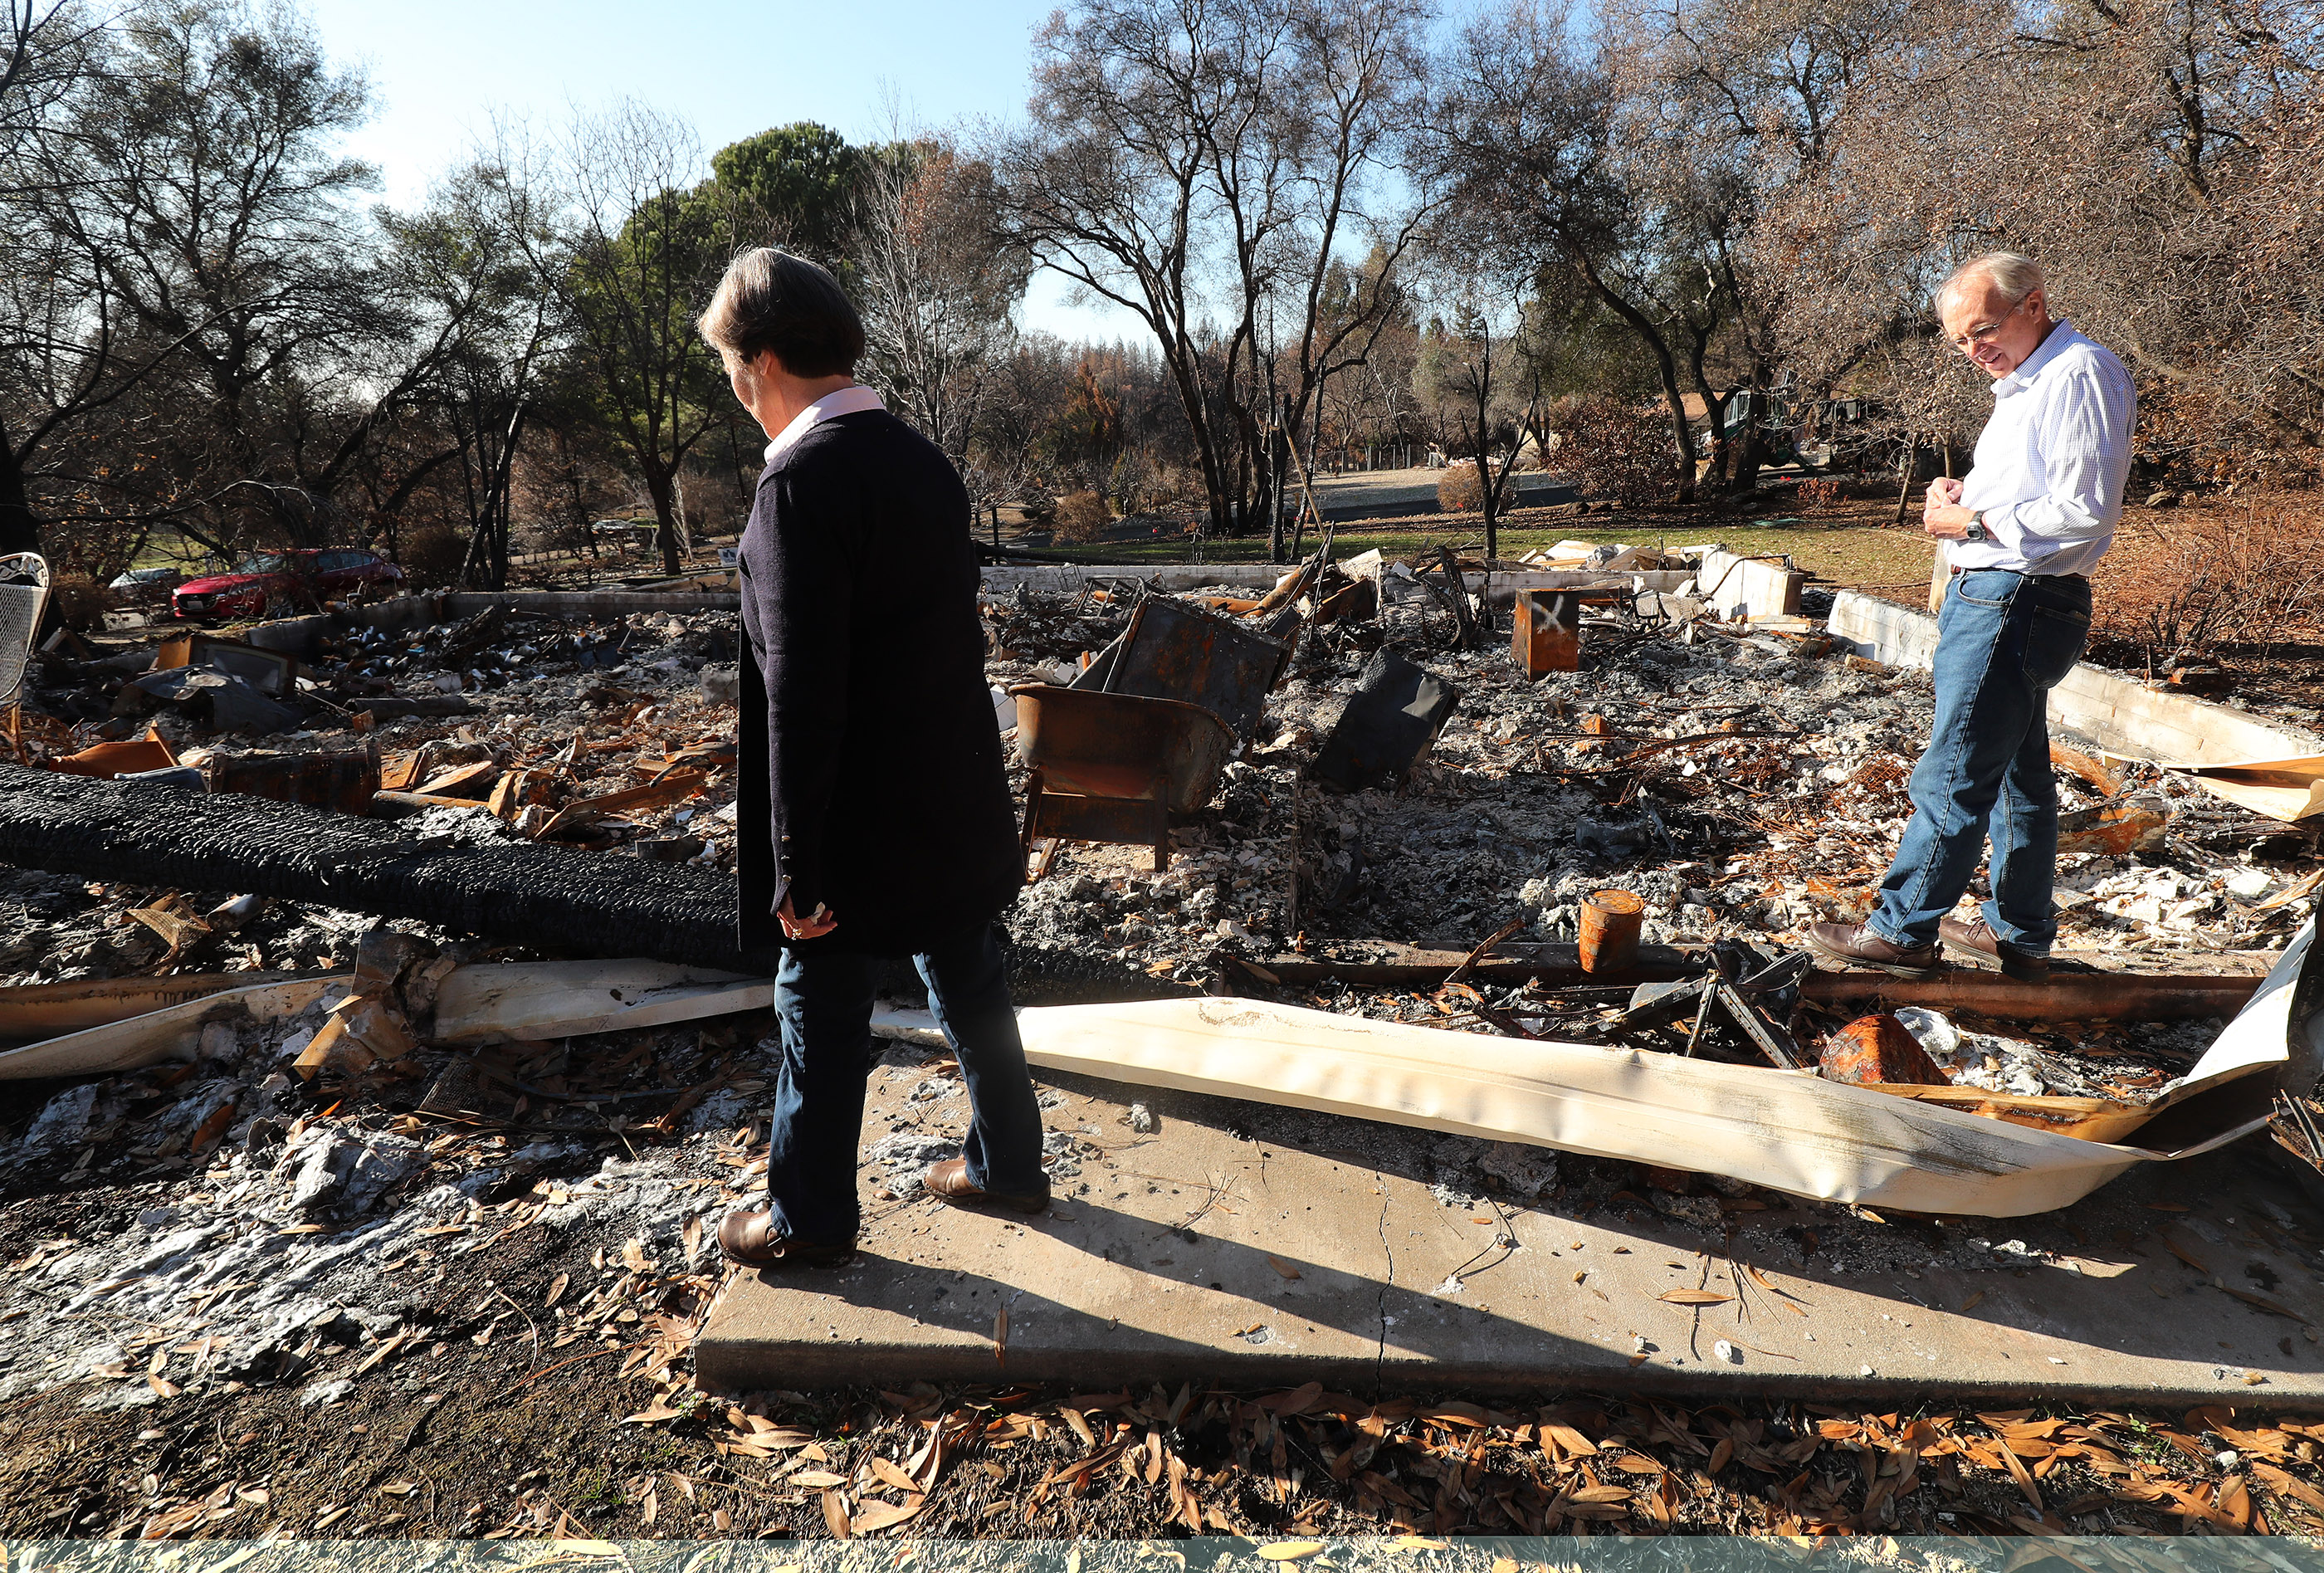 Rick and Kathie Turner look over their destroyed home in Paradise, California, on Saturday, Jan. 12, 2019, two months after the Camp Fire destroyed destroyed more than 18,000 homes and businesses.